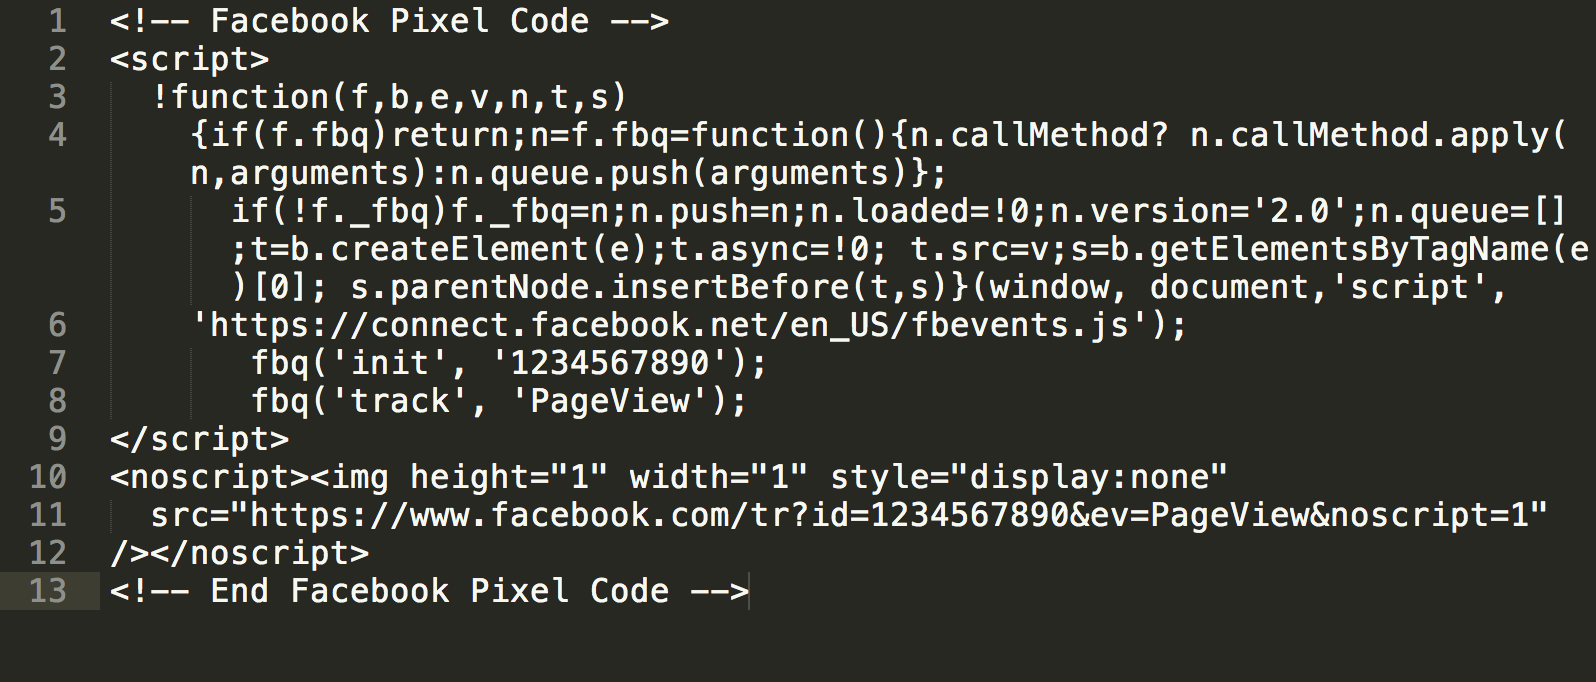 Facebook Pixel Code example within a text editor window